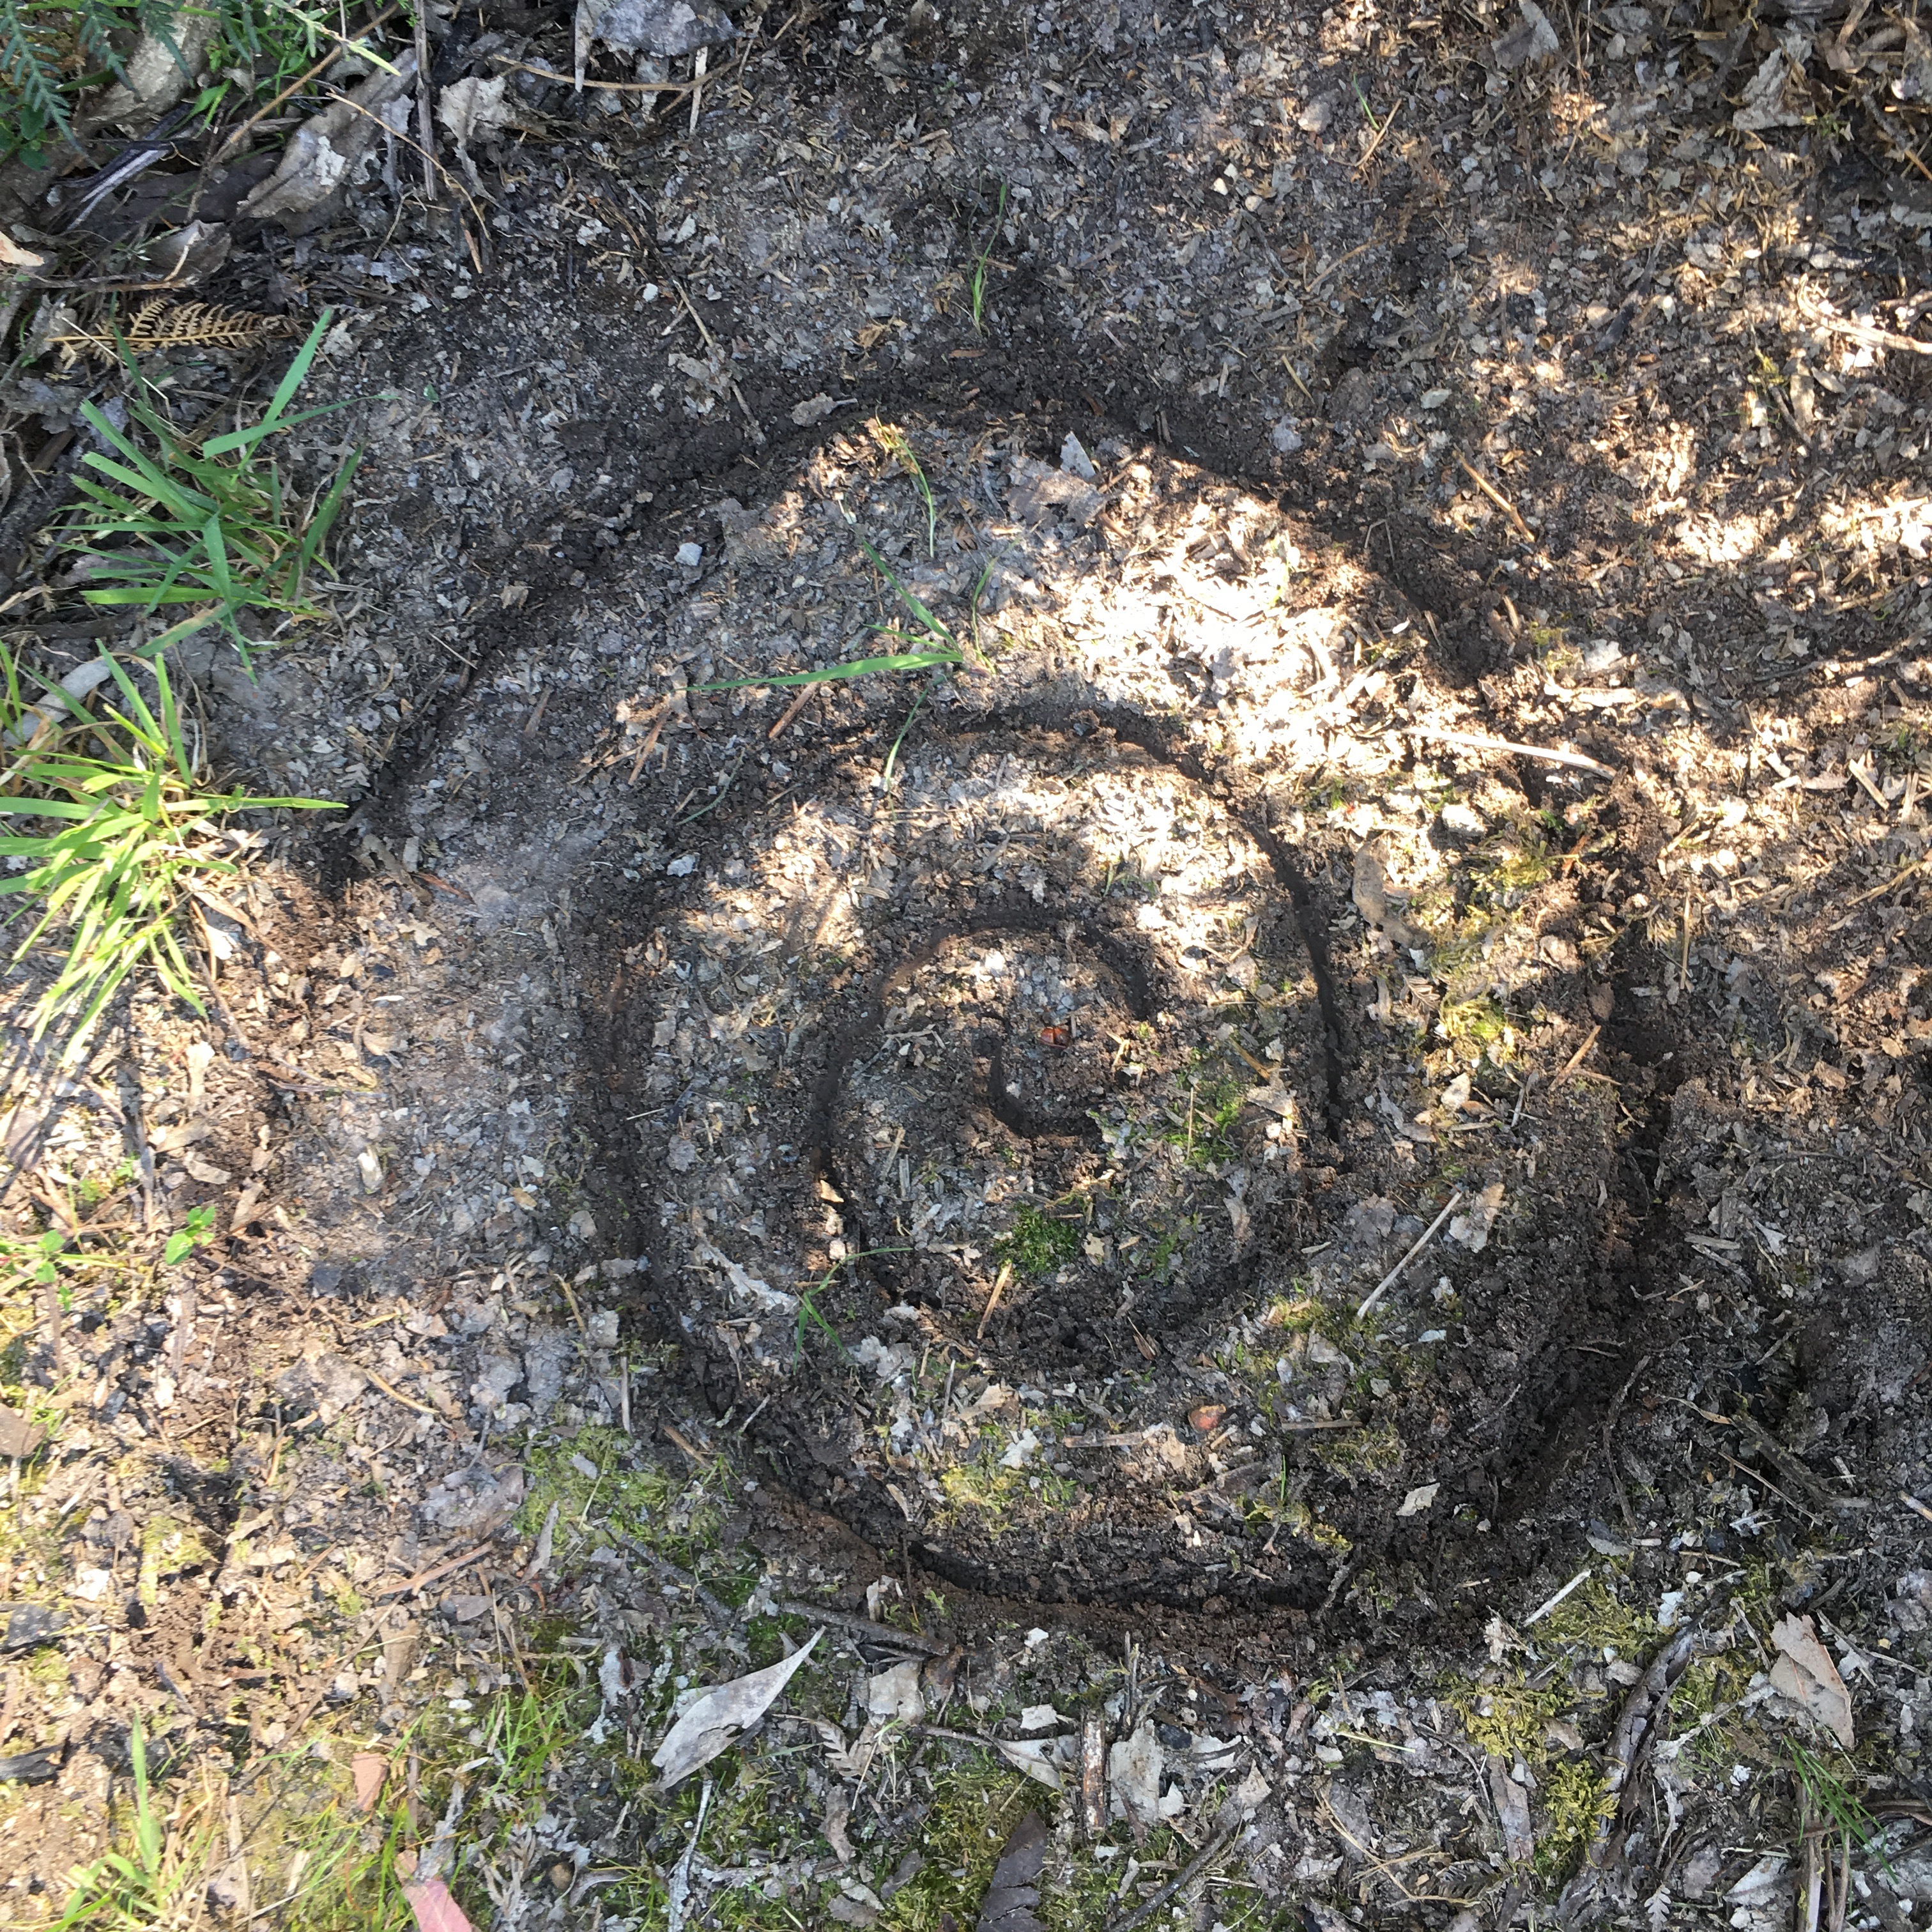 Spiral in the earth